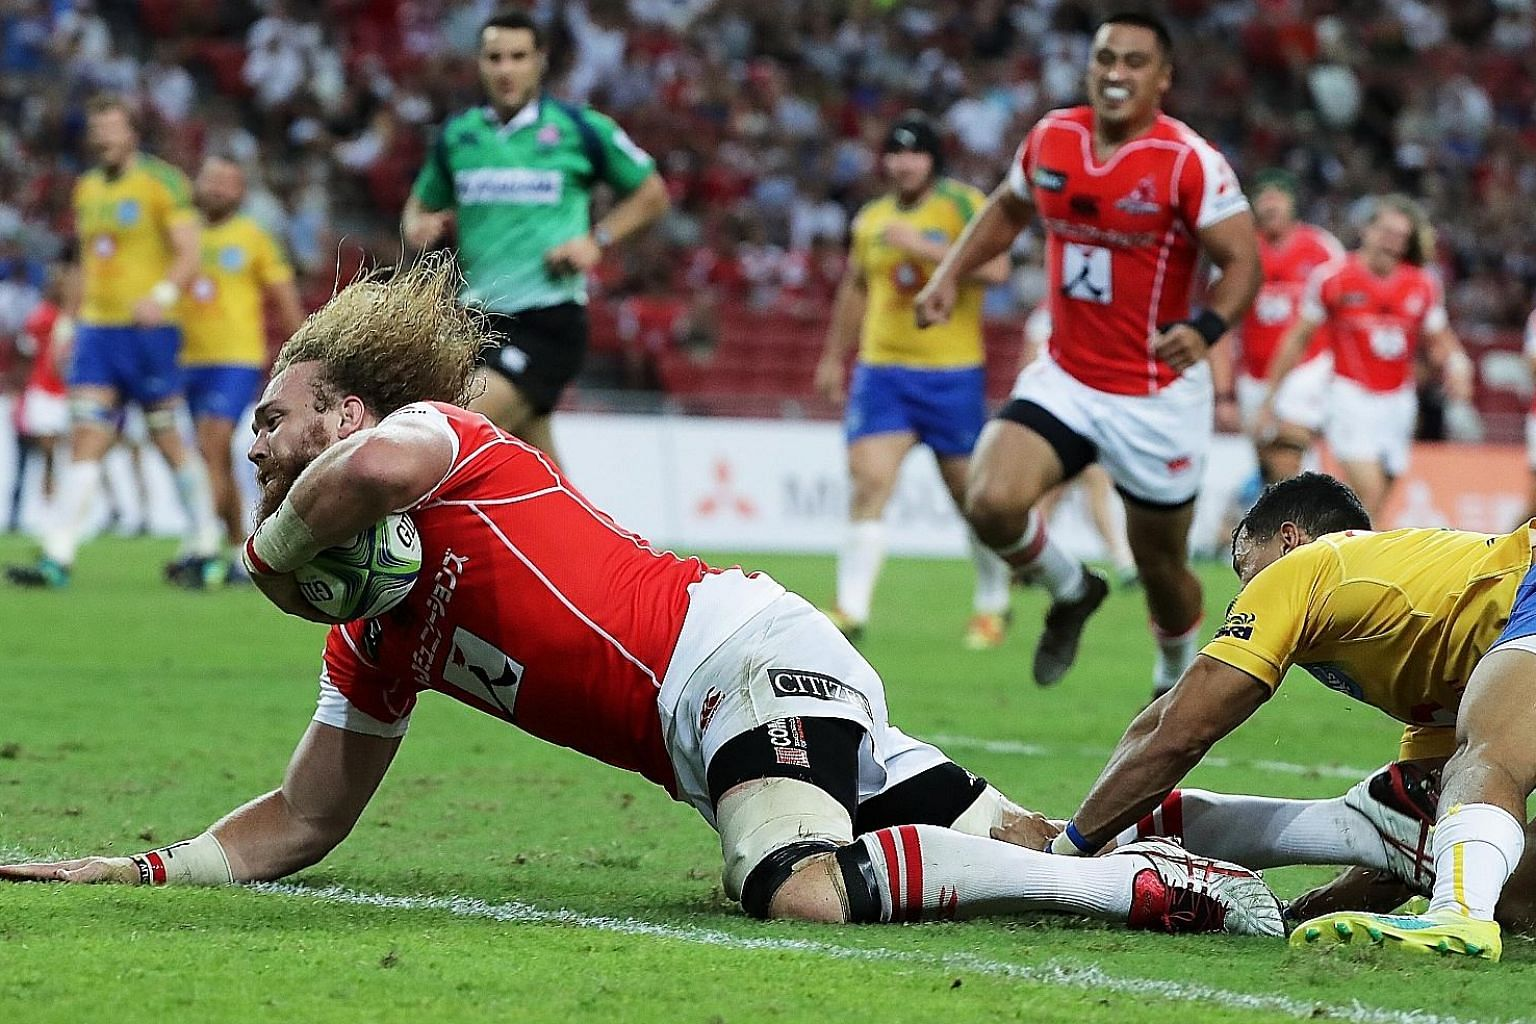 Sunwolves captain and flanker Willie Britz scoring a try during their third win of the year last night at the National Stadium - the most in any Super Rugby season.